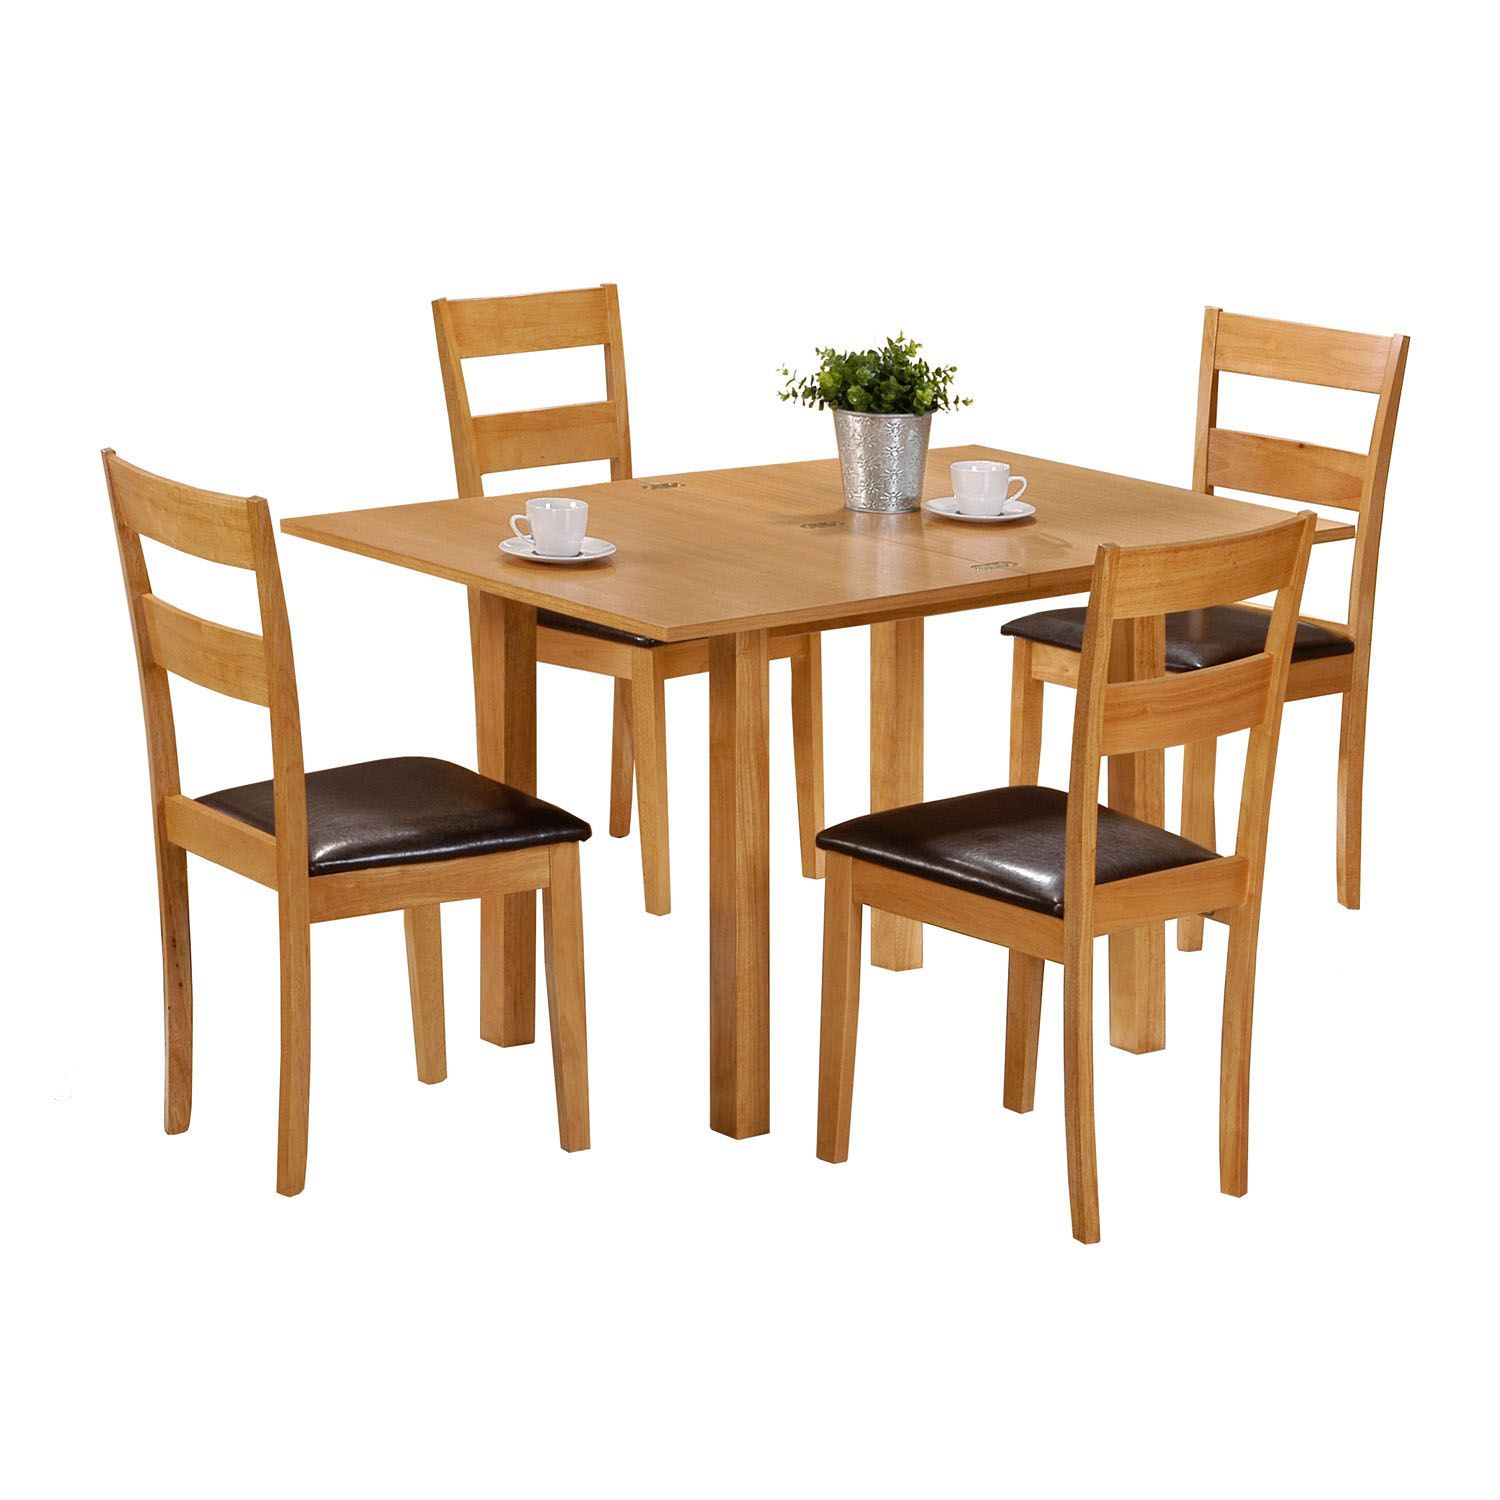 dining room table set. 4 Chair Dining Table Set Room D